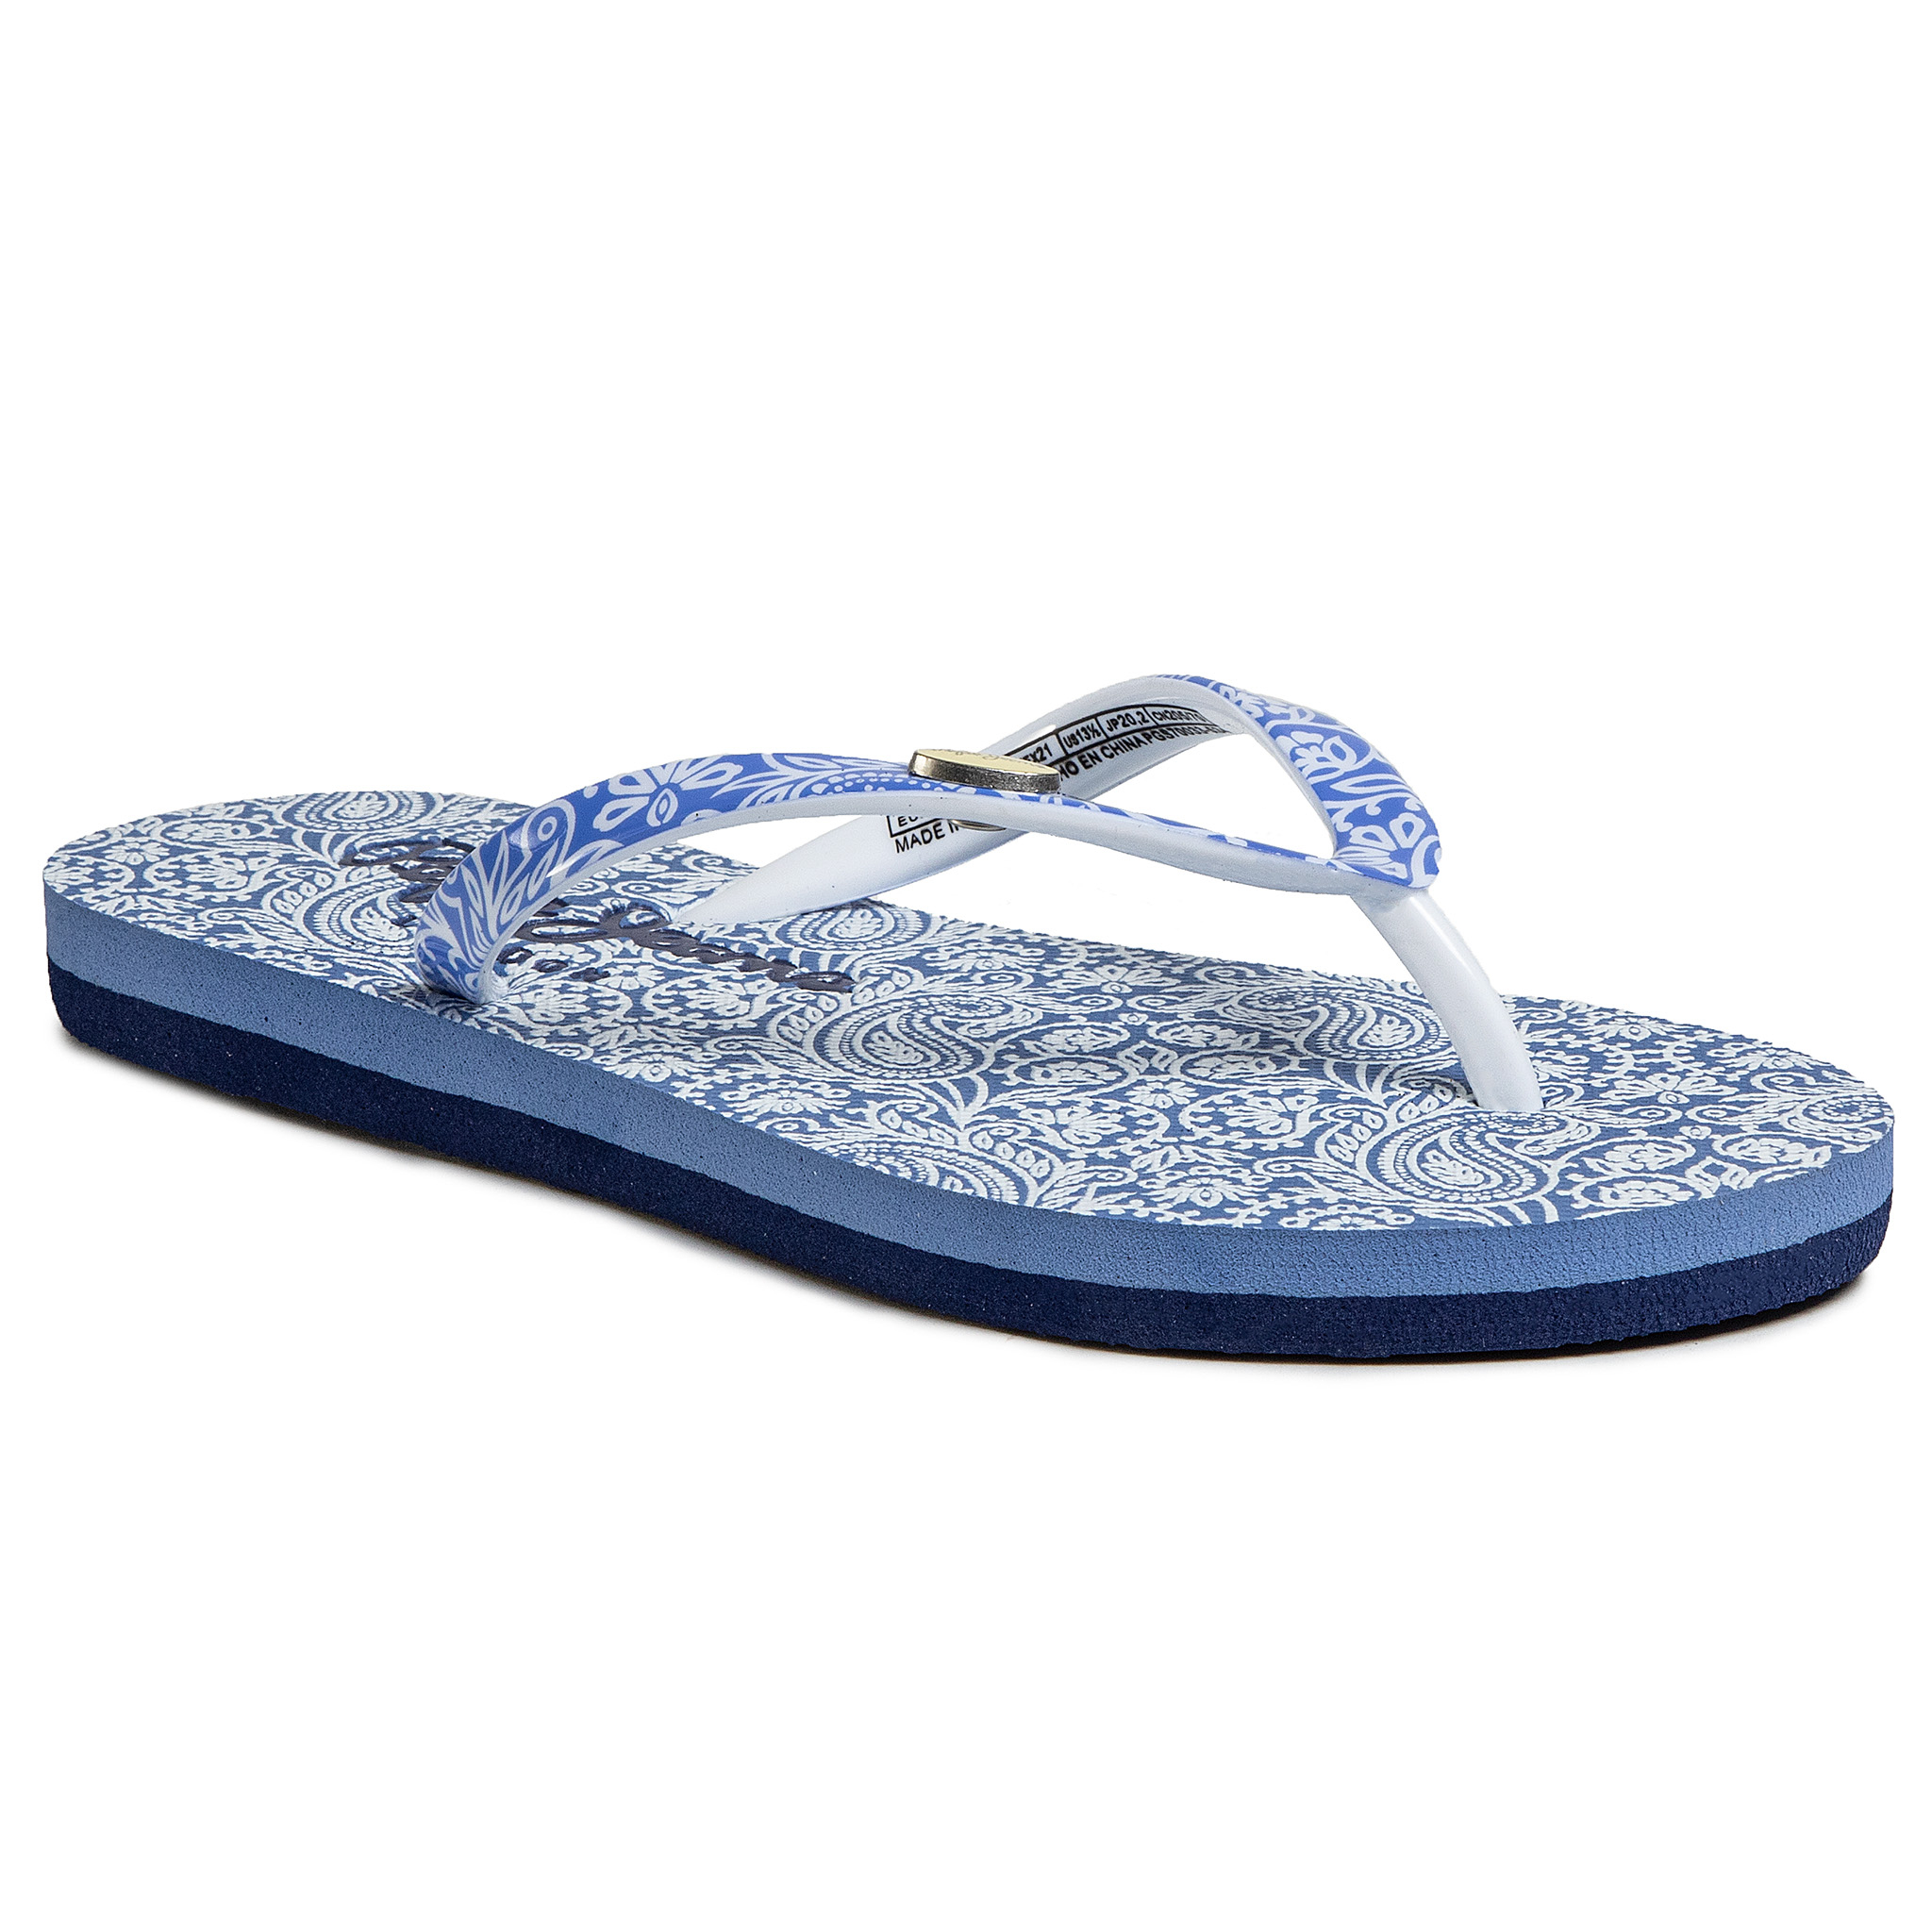 Šlepetės per pirštą PEPE JEANS - Beach All Over PGS70033 Summer Blue 534